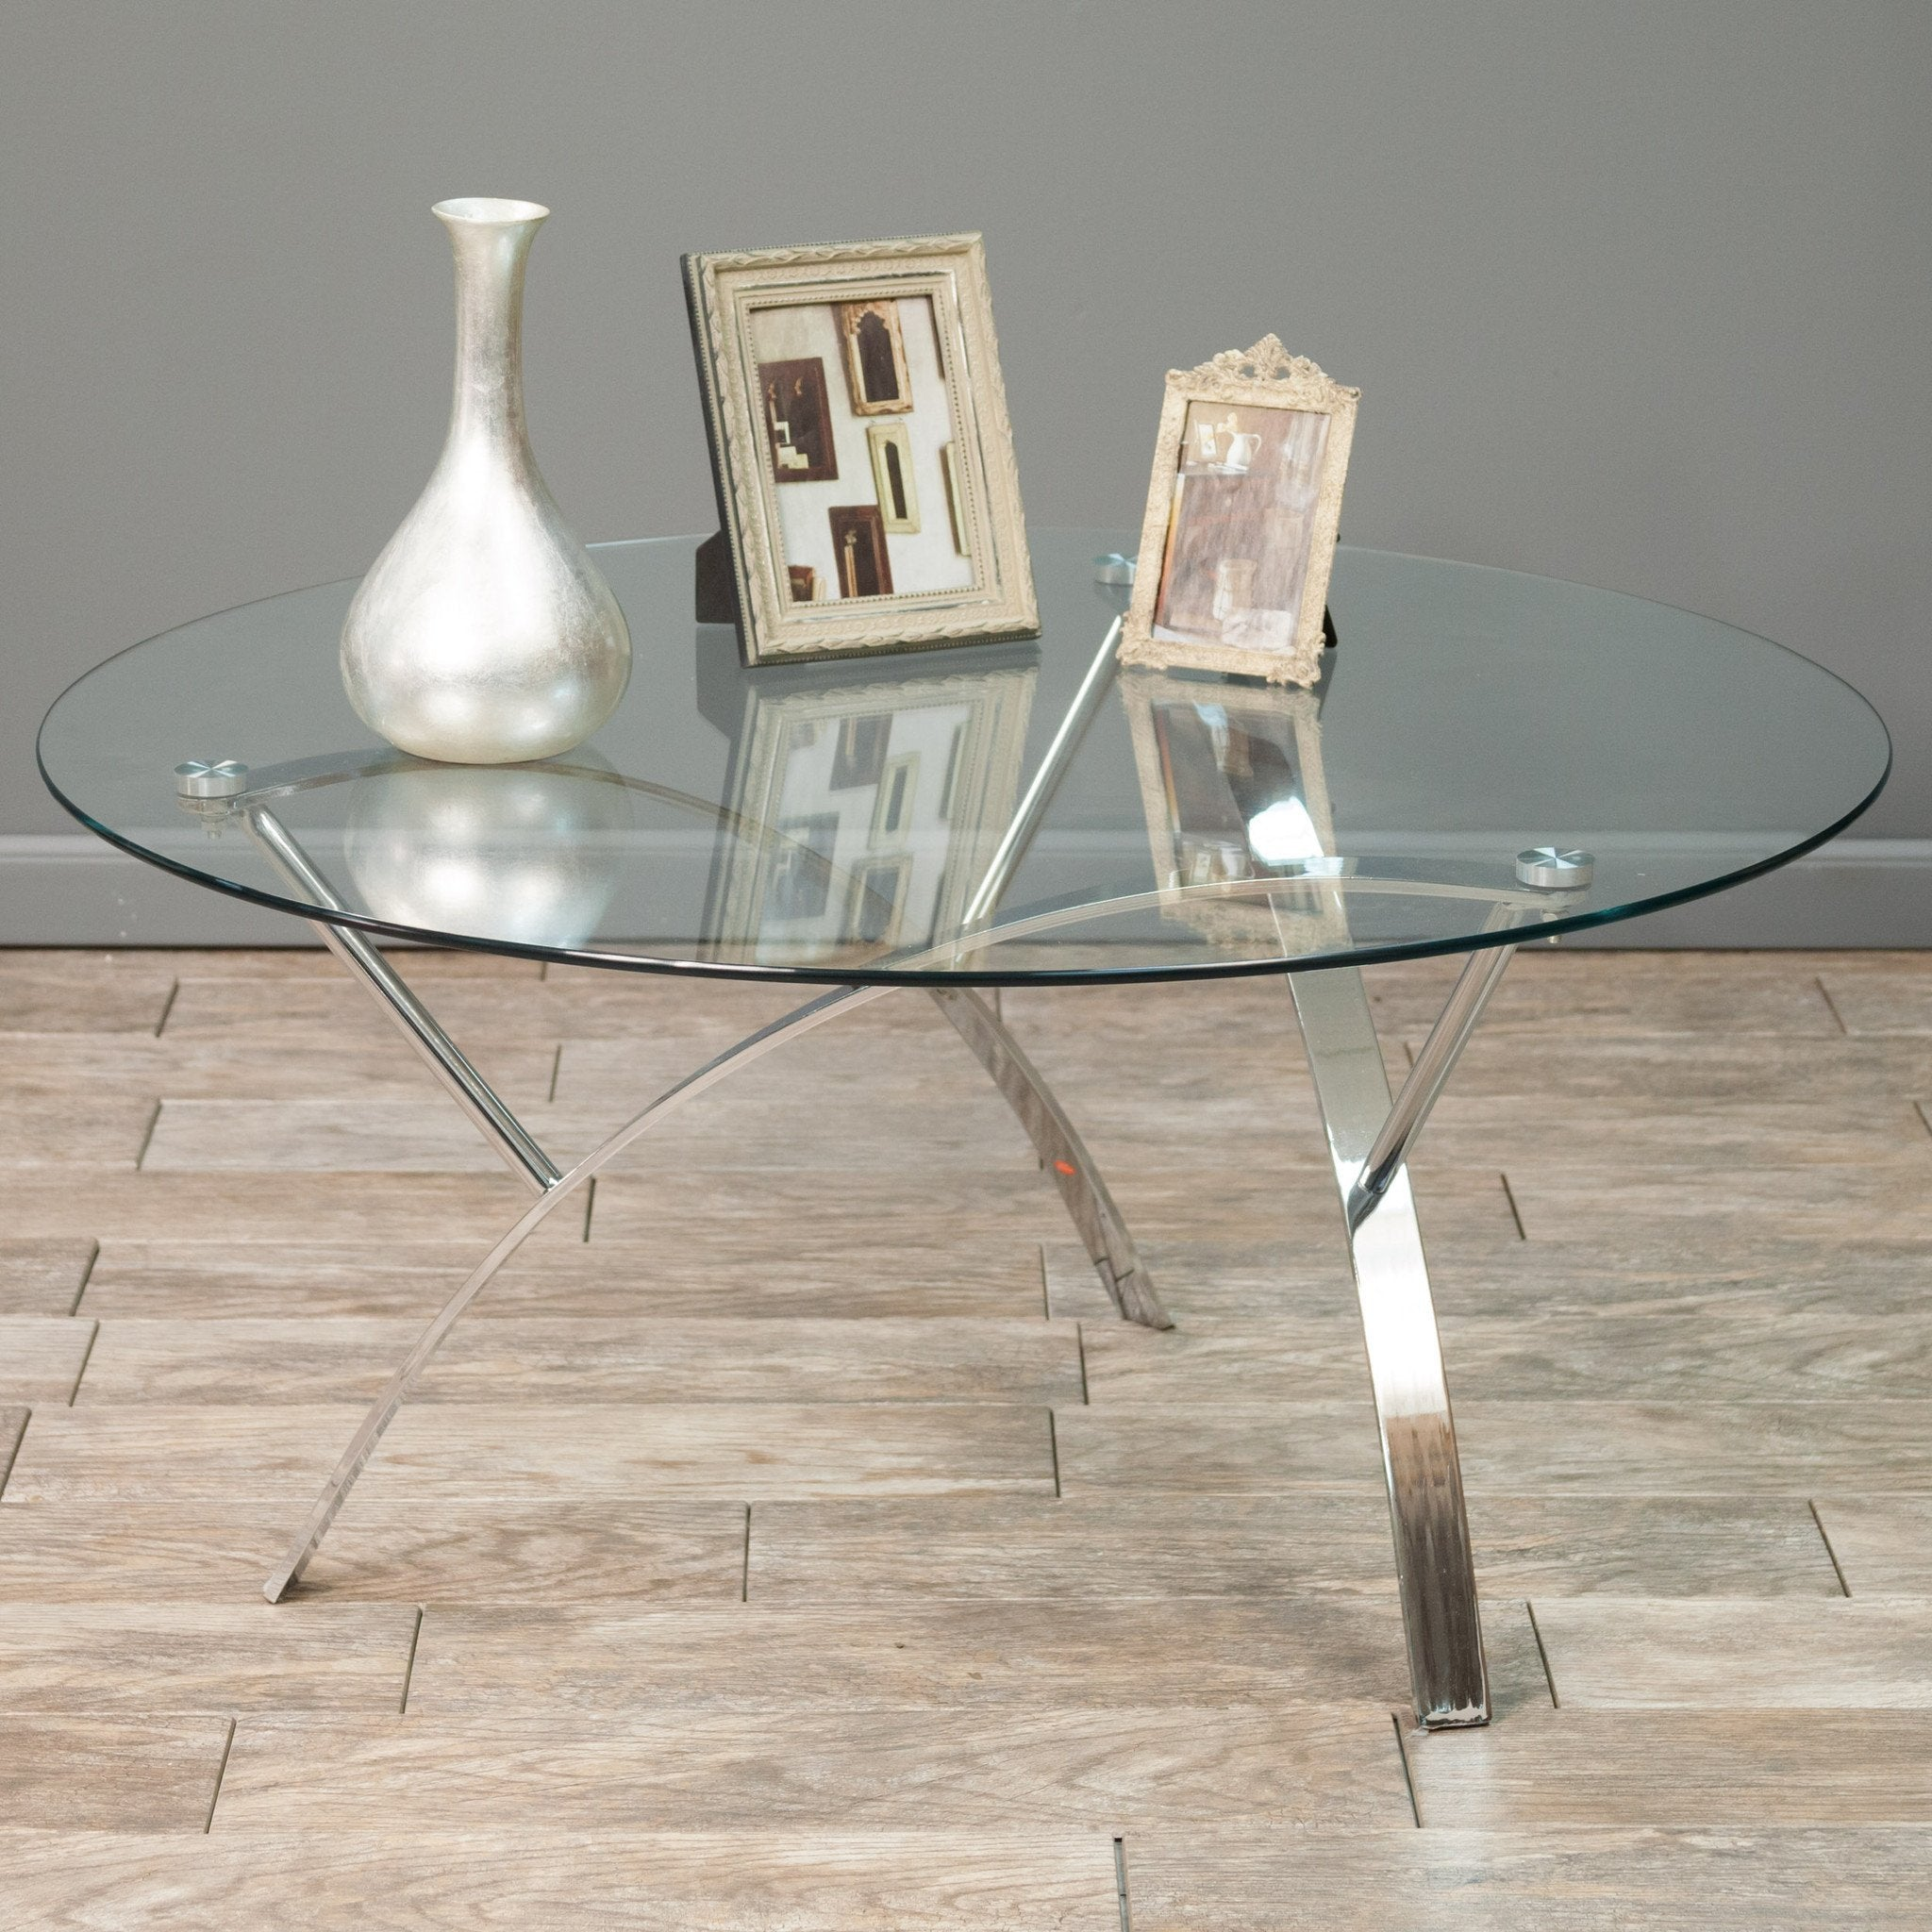 Marianne Round Glass Coffee Table